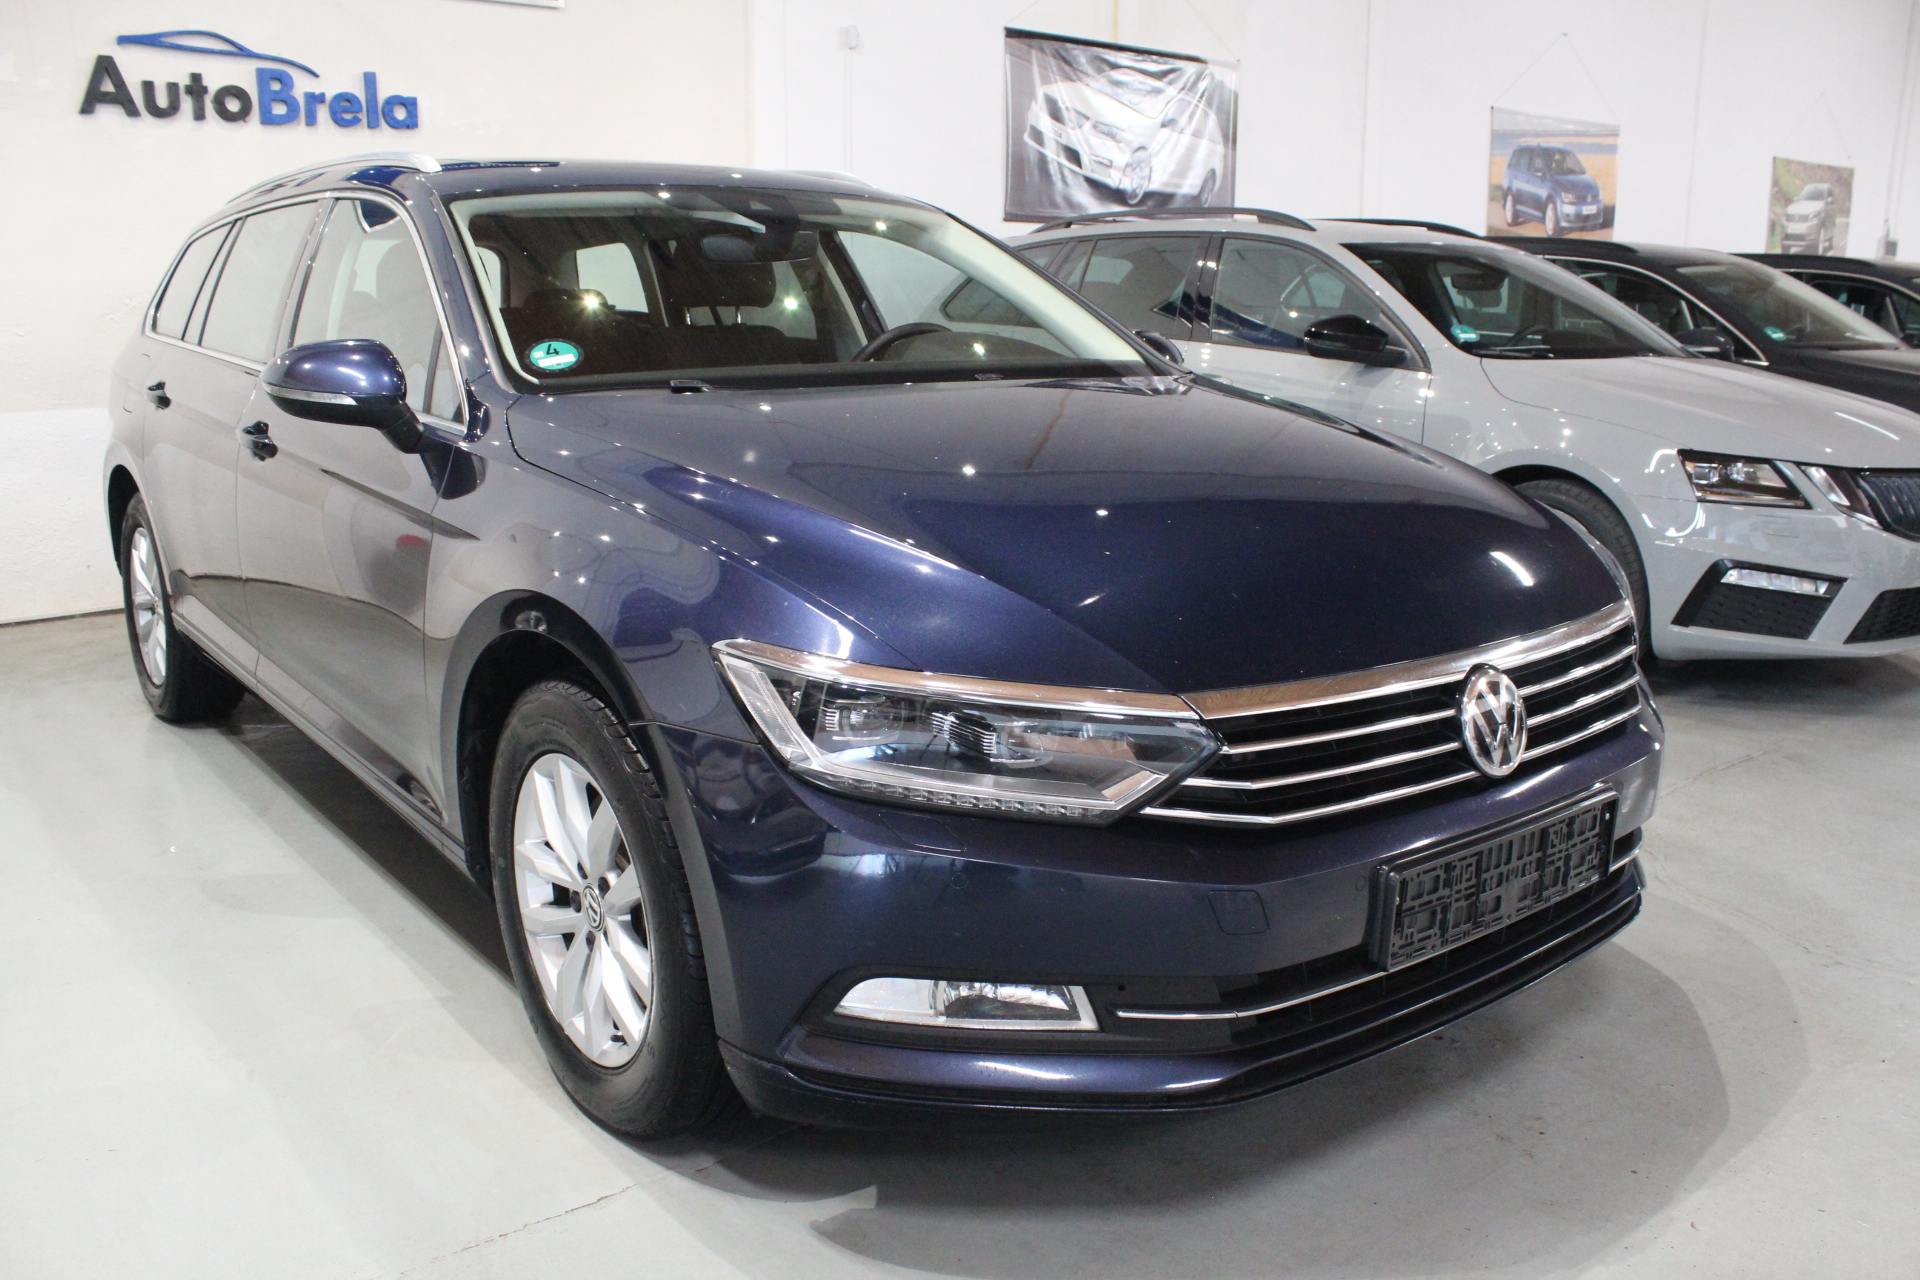 VW Passat B8 2.0 TDI Highline FULL LED Active Info display 12″ 2017 - AutoBrela obrázek